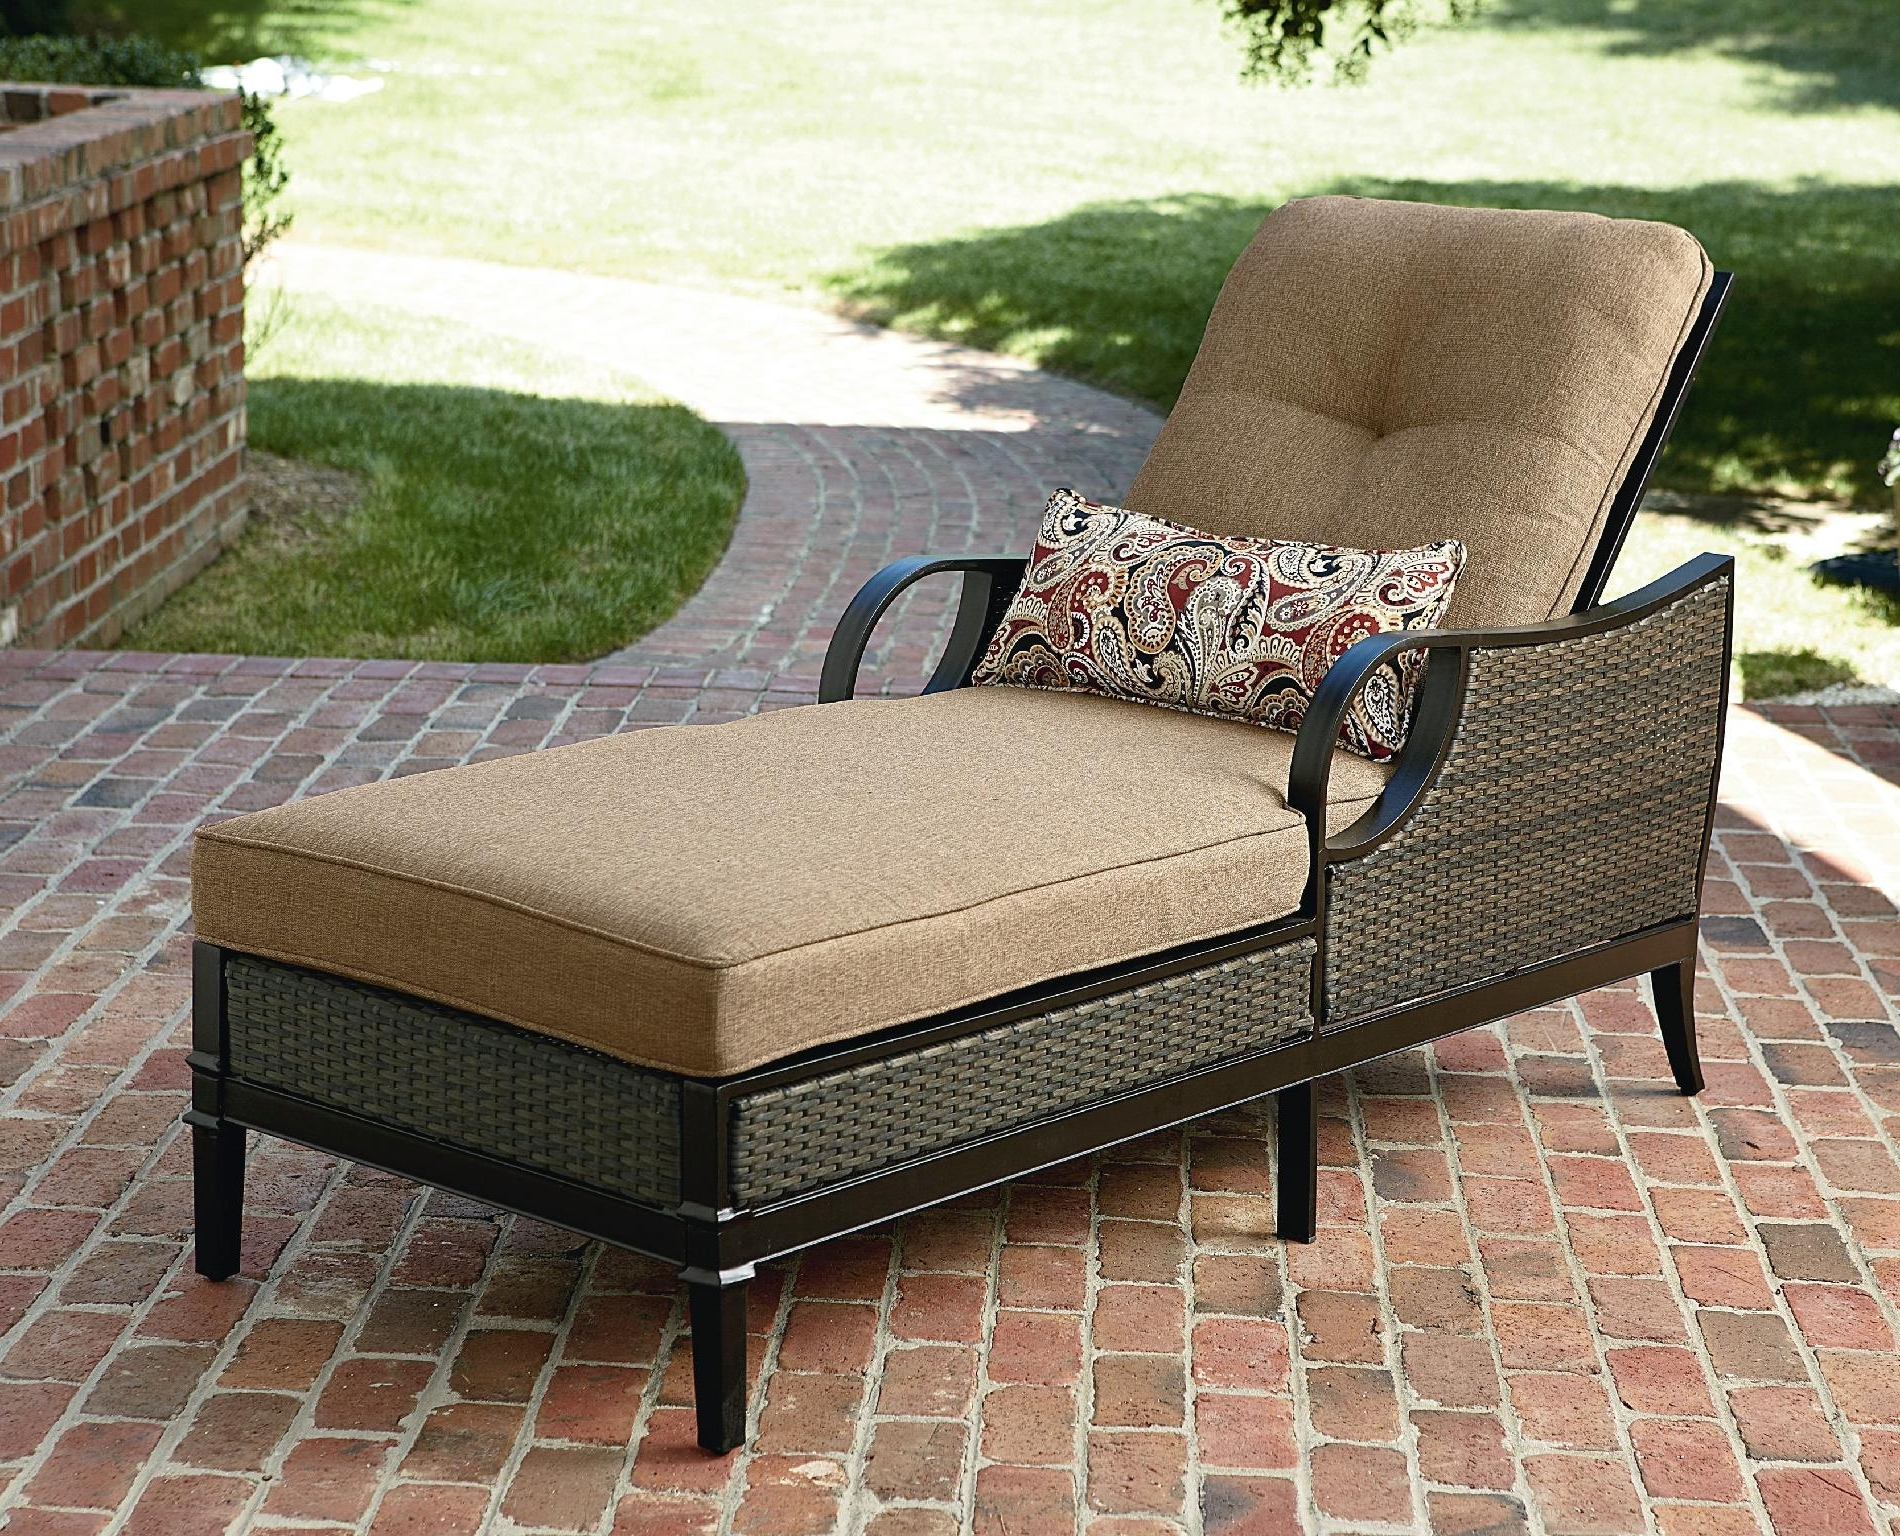 Preferred Lounge Chair Patio Sets • Lounge Chairs Ideas In Chaise Lounges For Patio (View 10 of 15)